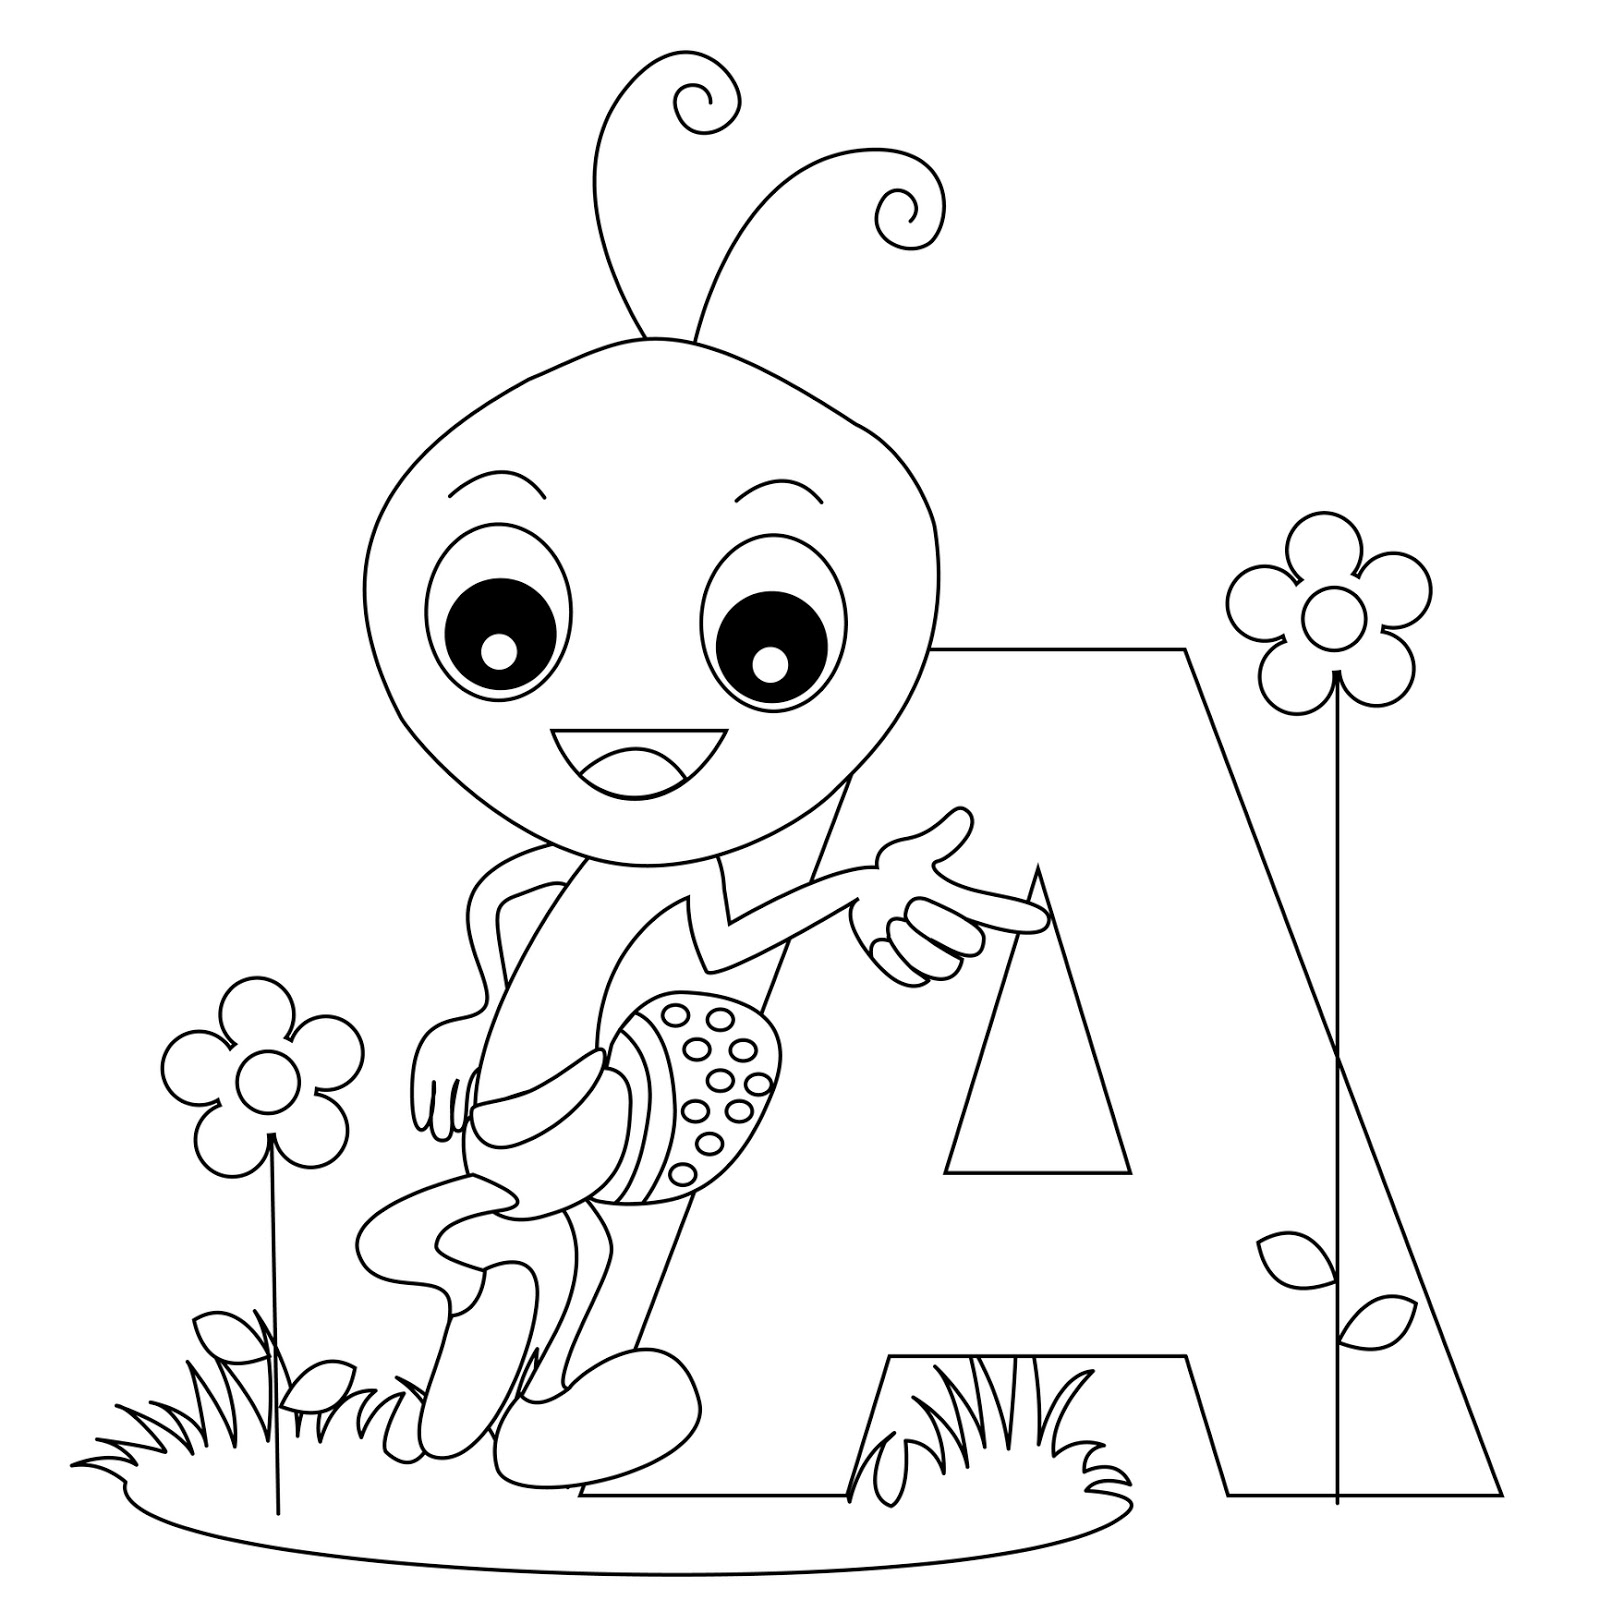 animal alphabet colouring pages free printable alphabet coloring pages for kids best colouring pages alphabet animal